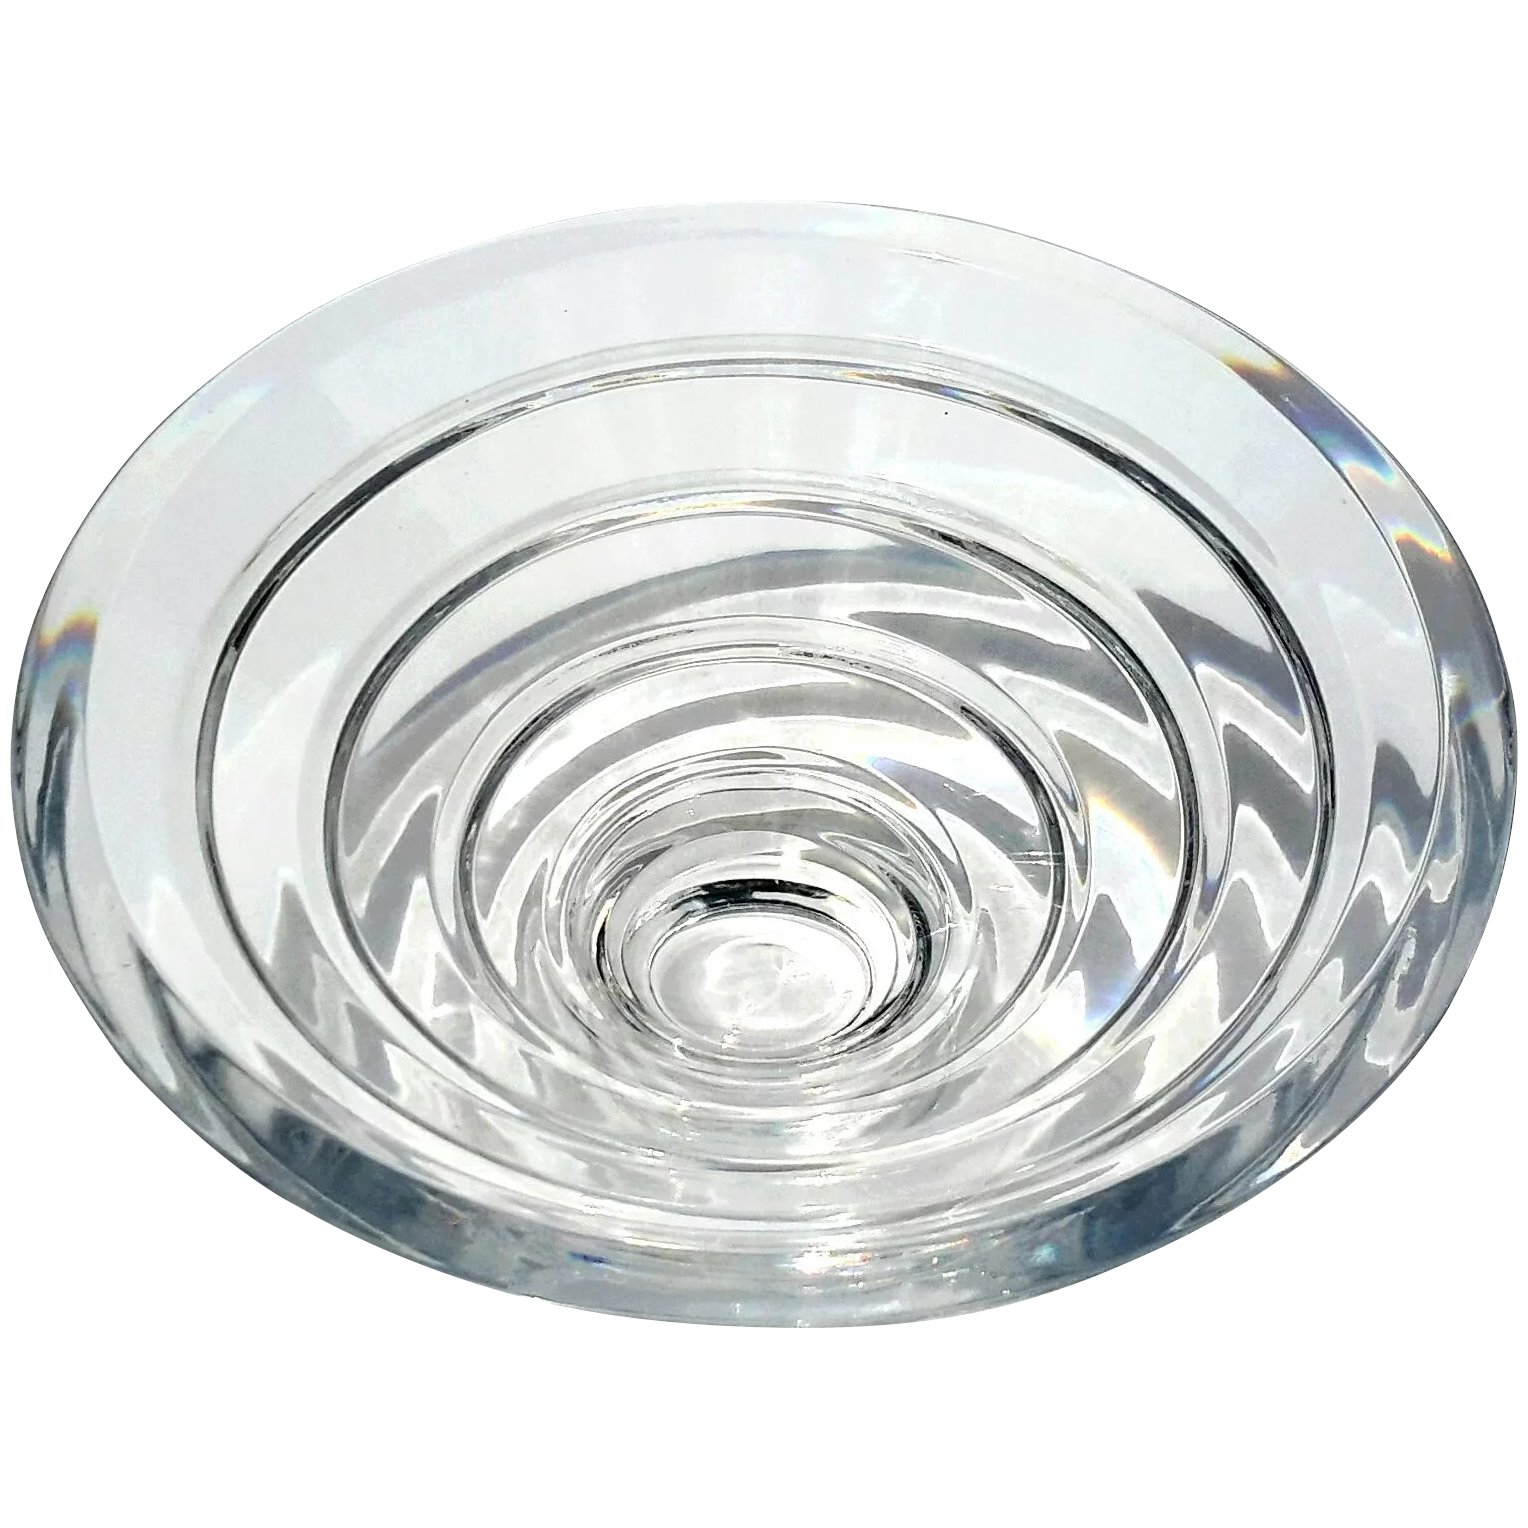 Crystal roulette bowl by nambe stephen a kramer ltd ruby lane crystal roulette bowl by nambe click to expand reviewsmspy